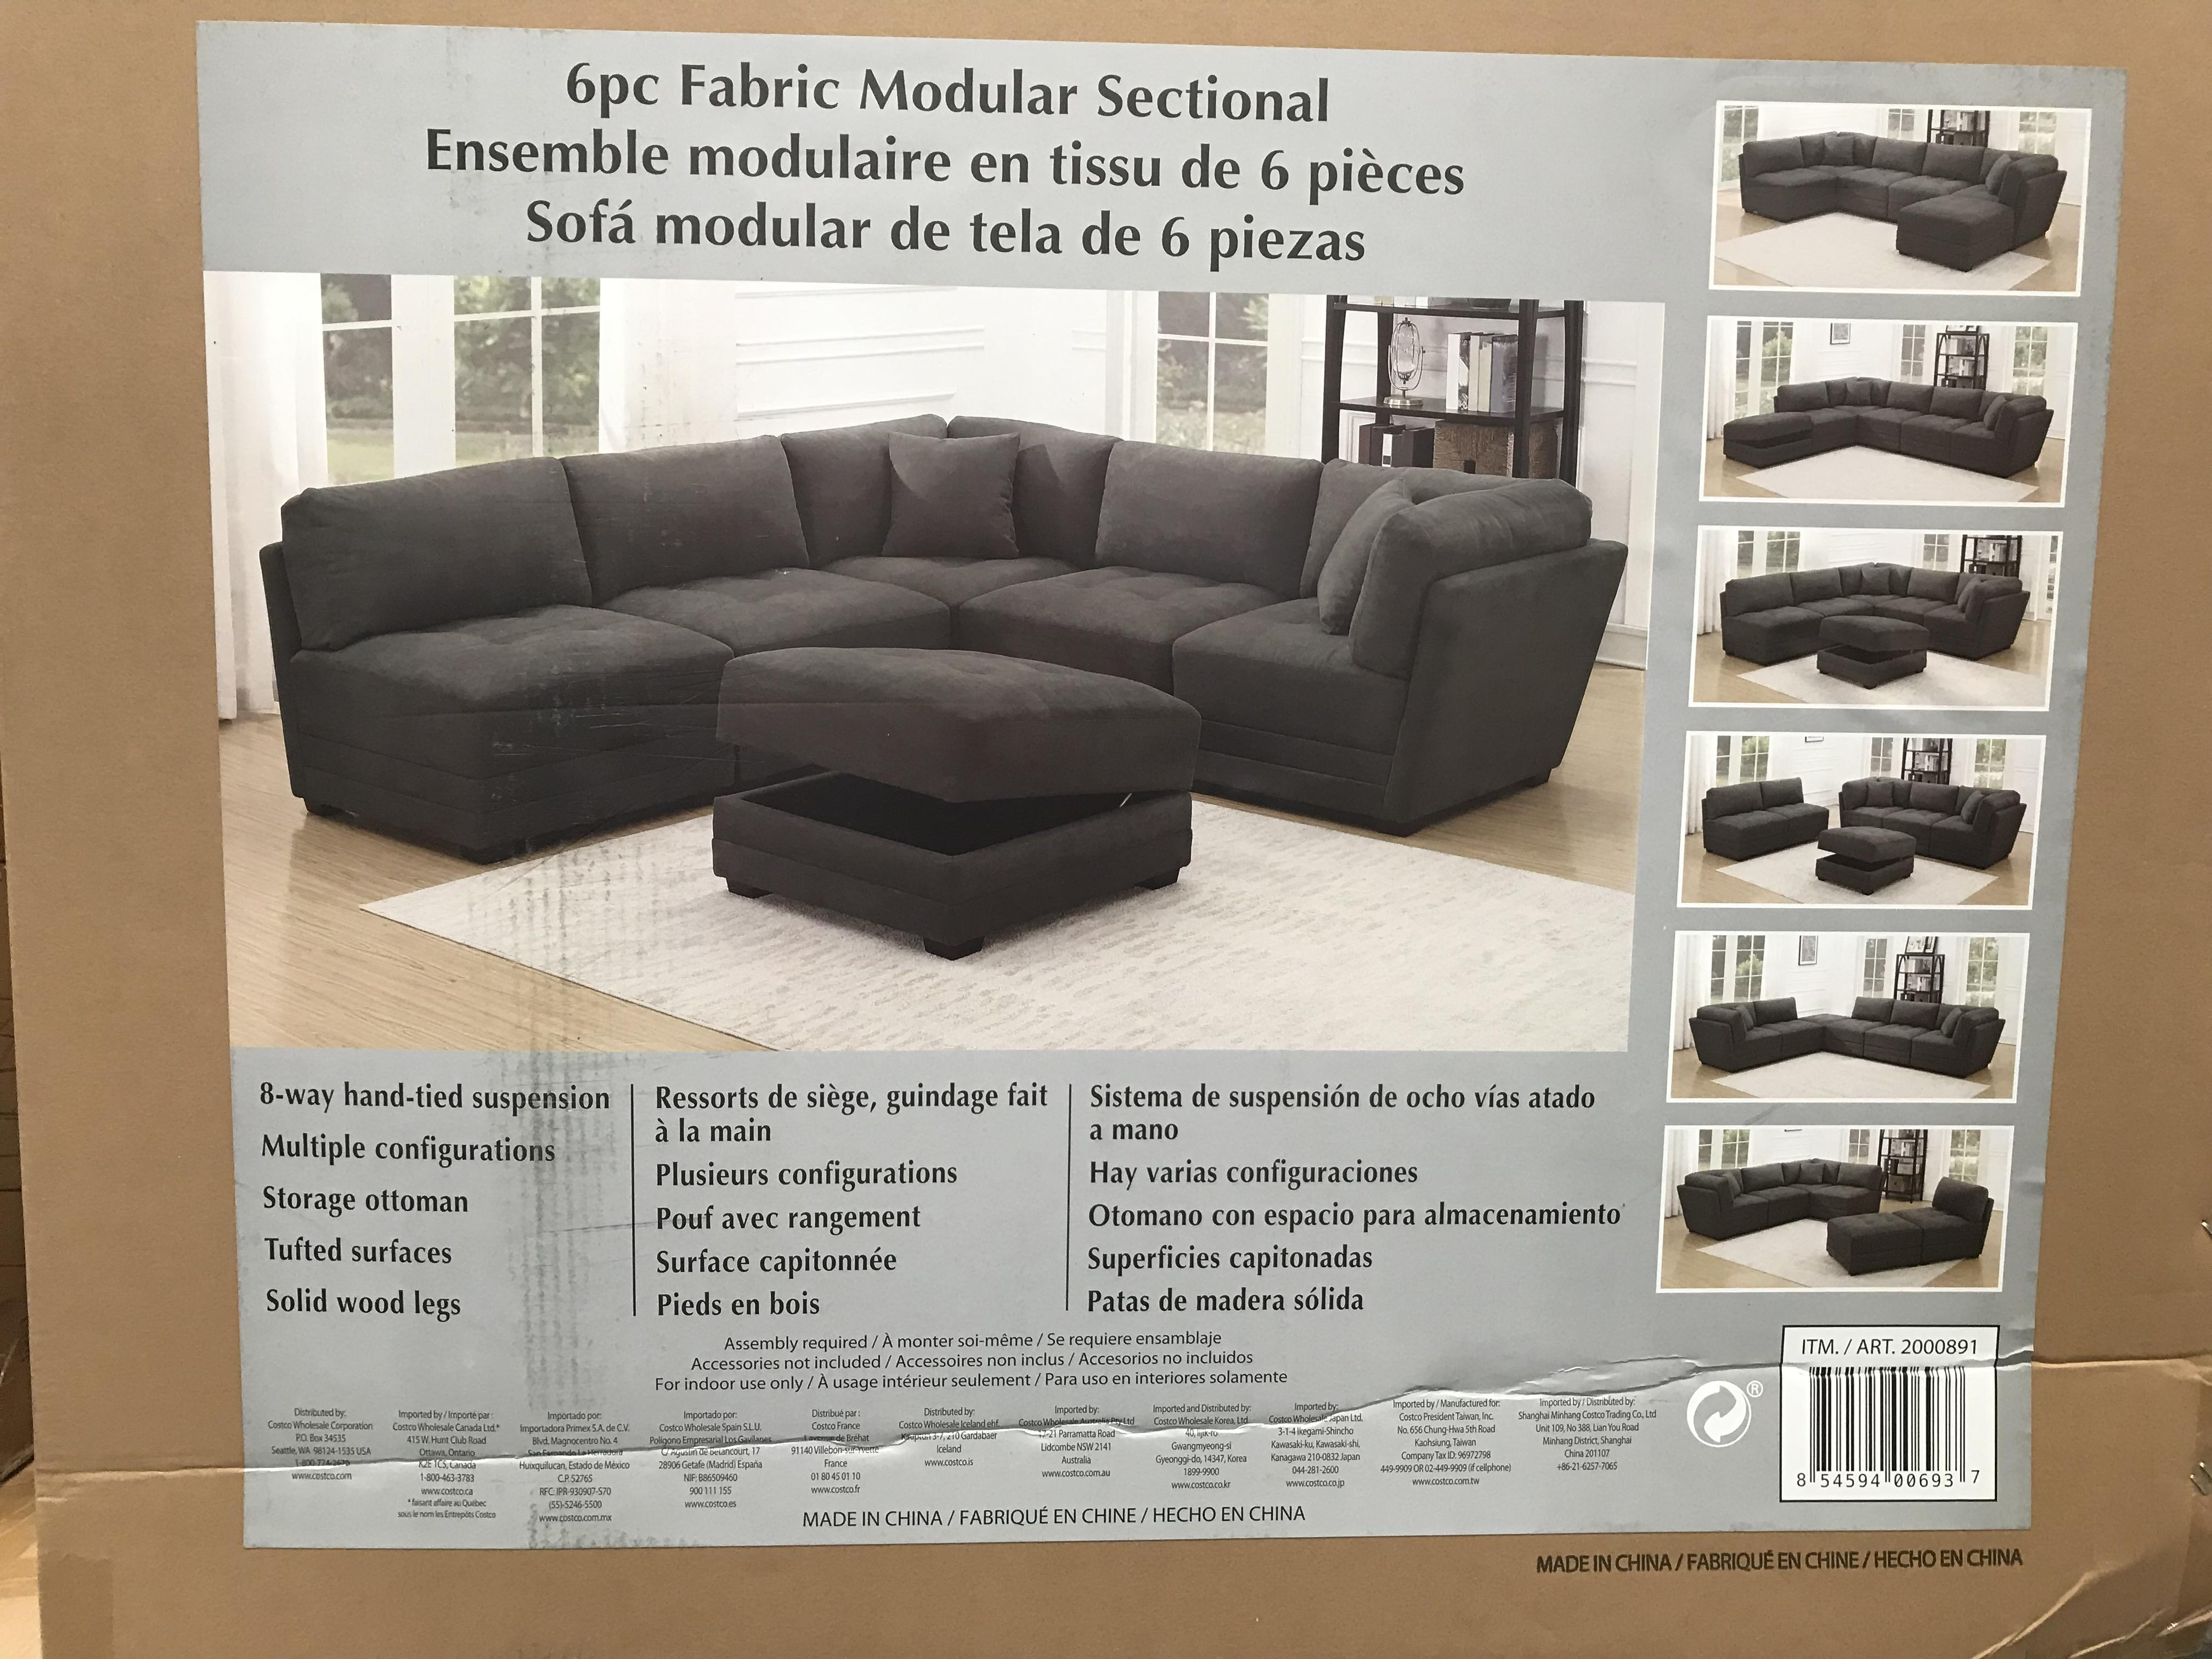 Sofa Couch Reddit Has Anyone Bought This Couch I M Looking For Reviews Costco